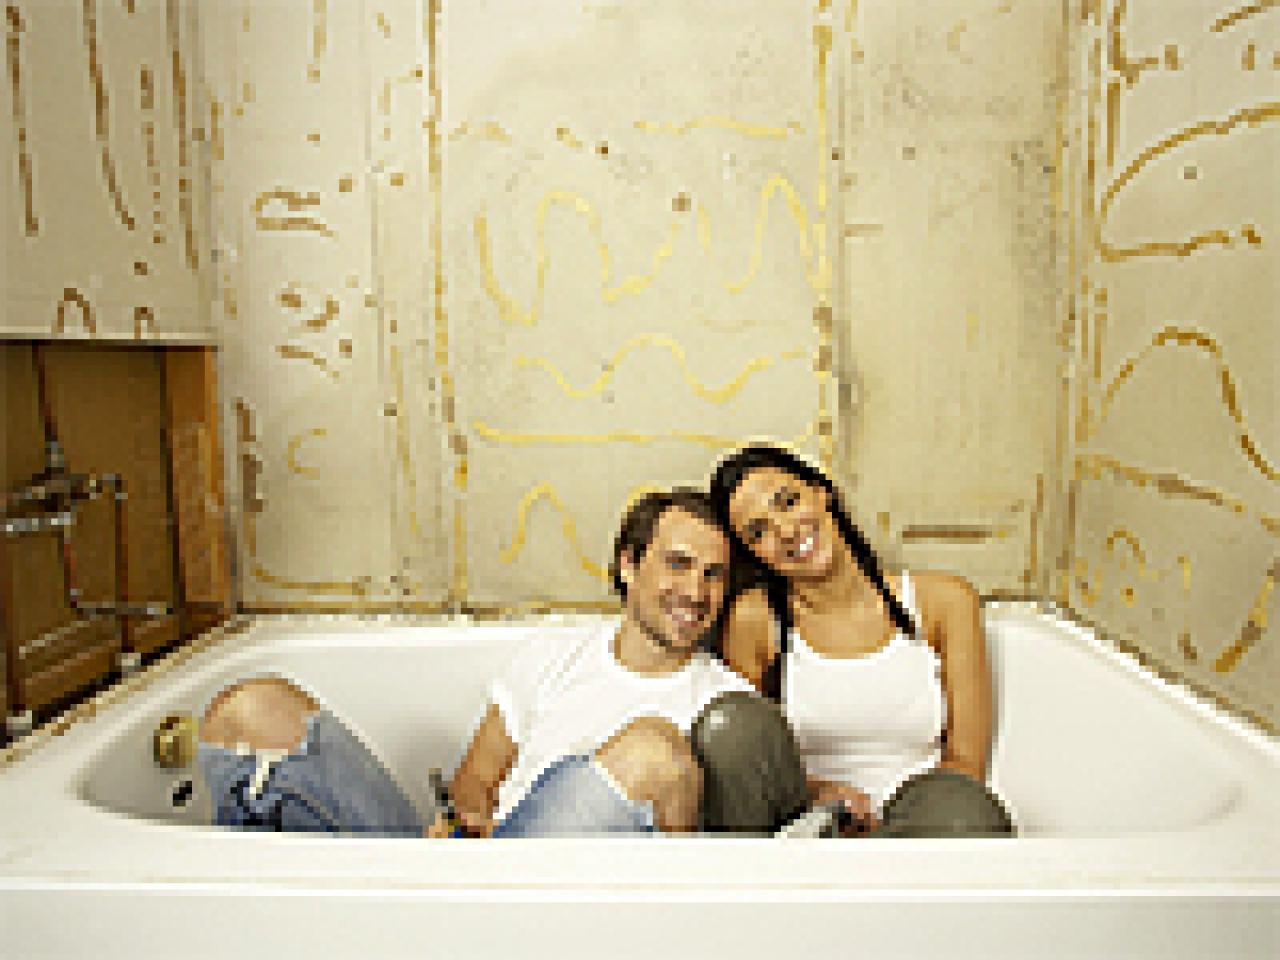 Bathroom Renovation Price budgeting your bathroom renovation | hgtv